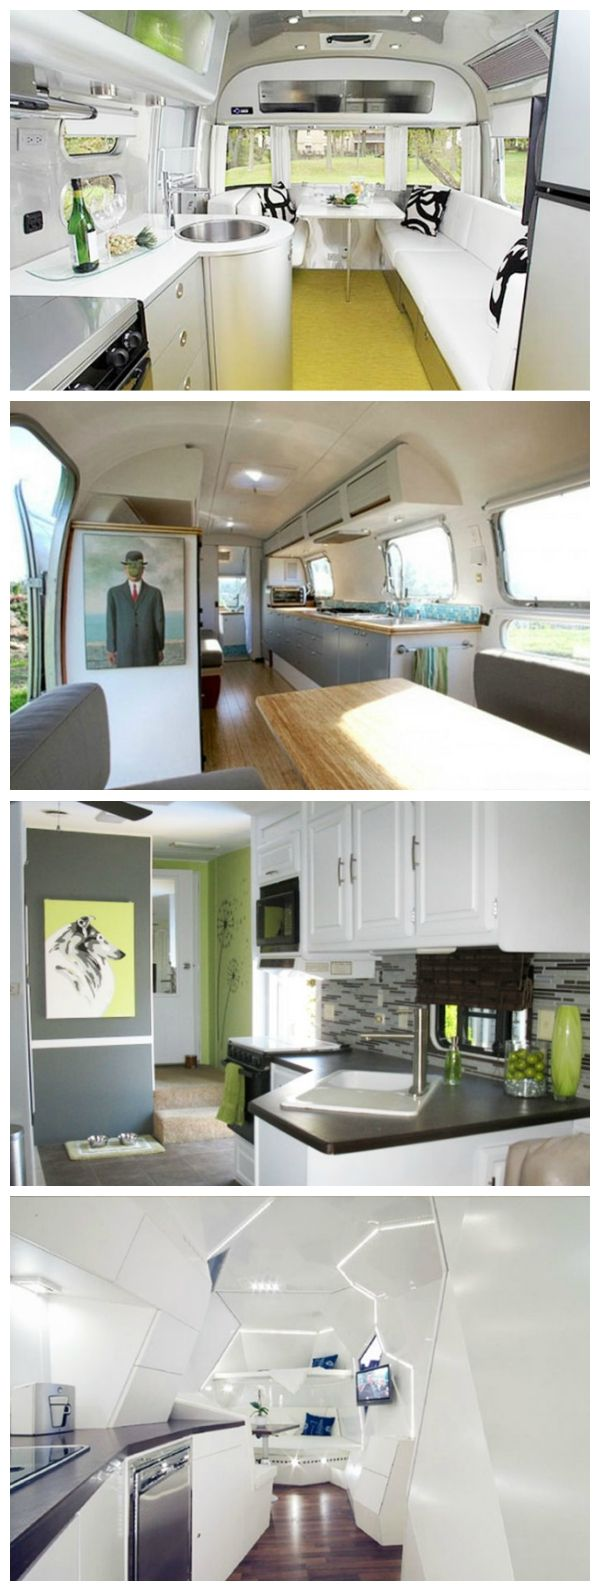 Tesla Model H Announced A Plug In Hybrid Mobile Home That Is Both Cozy And Luxurious